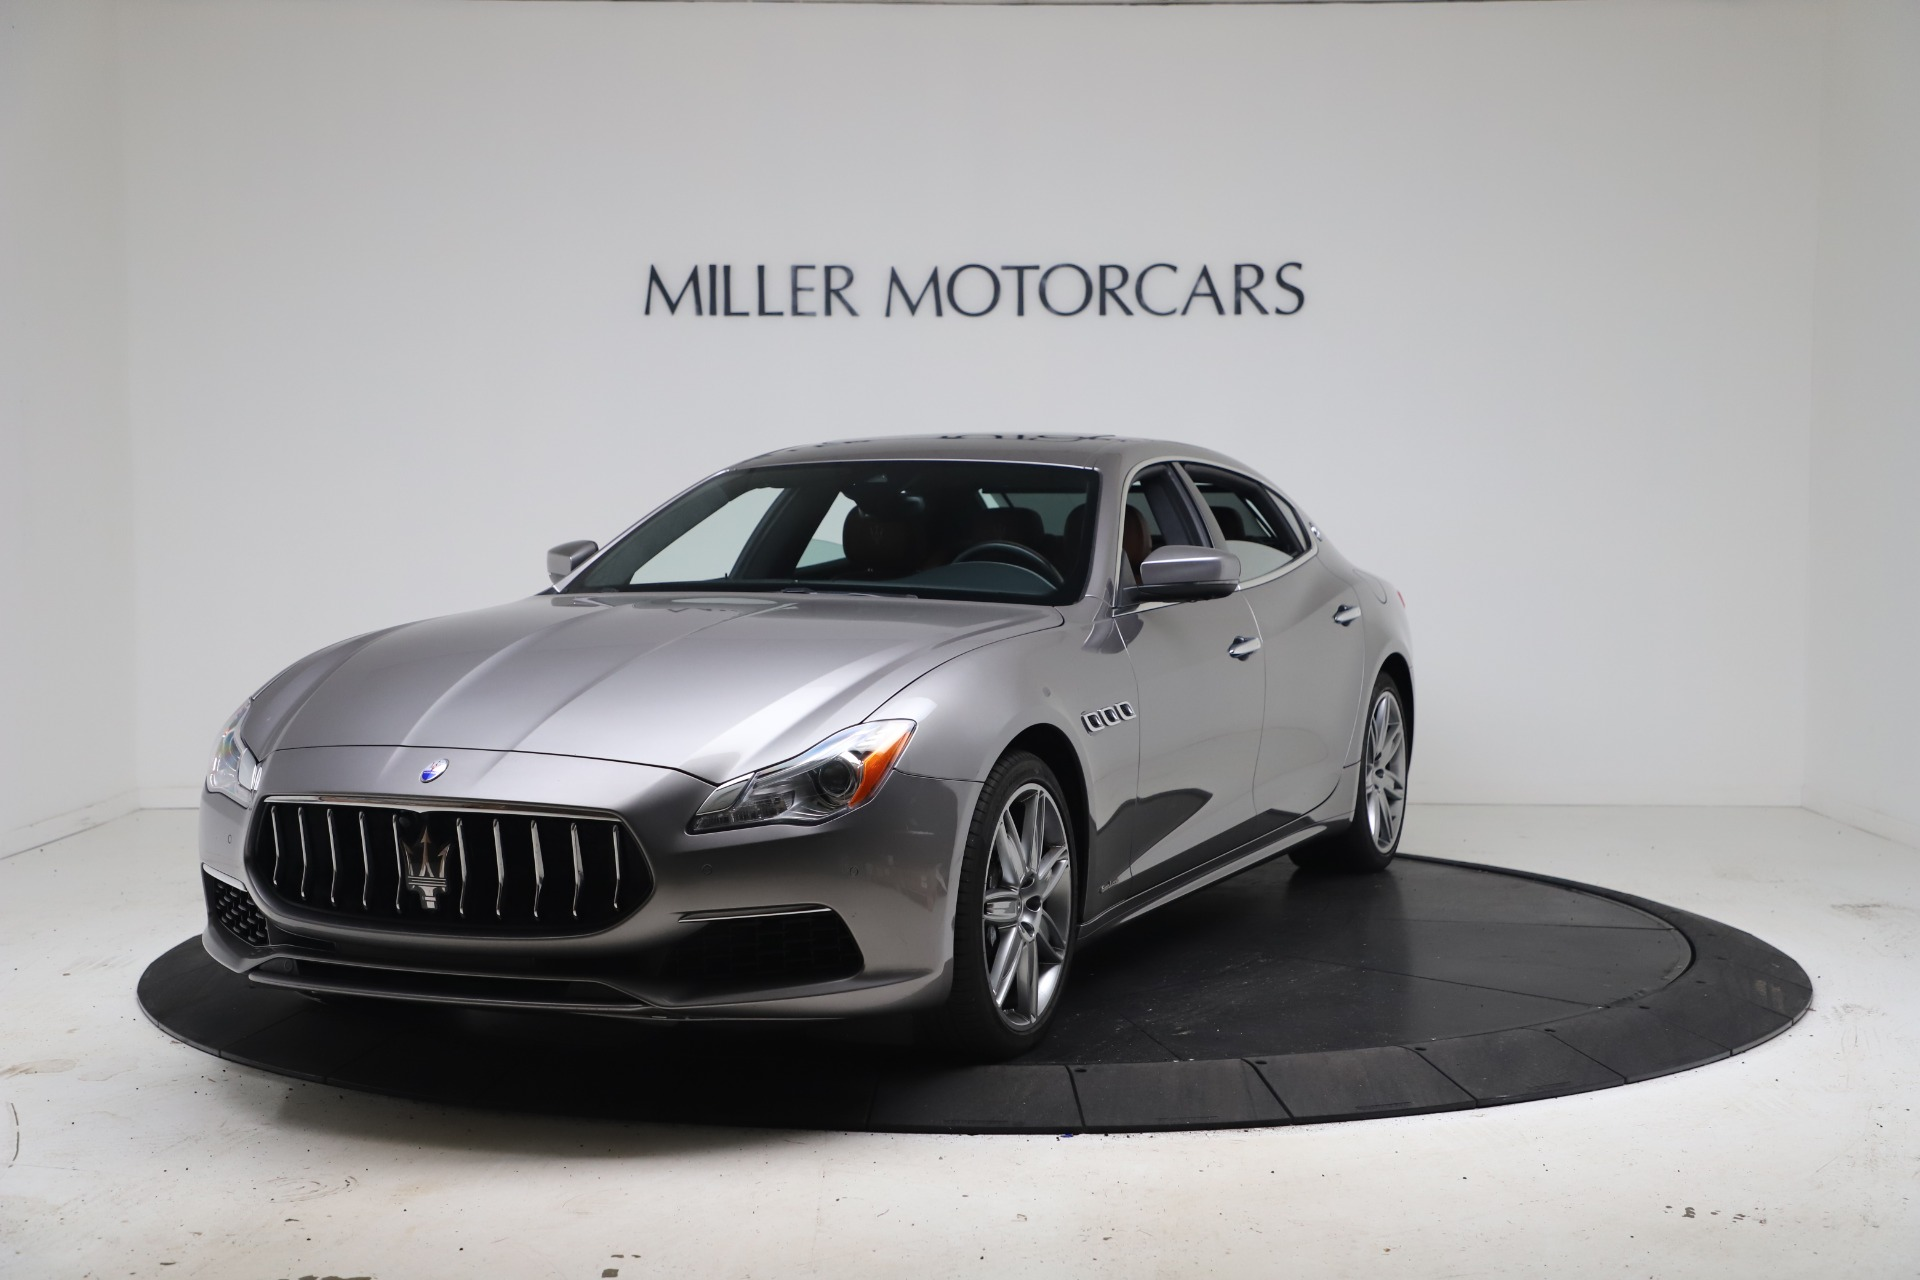 New 2017 Maserati Quattroporte SQ4 GranLusso/ Zegna For Sale In Greenwich, CT 1355_main